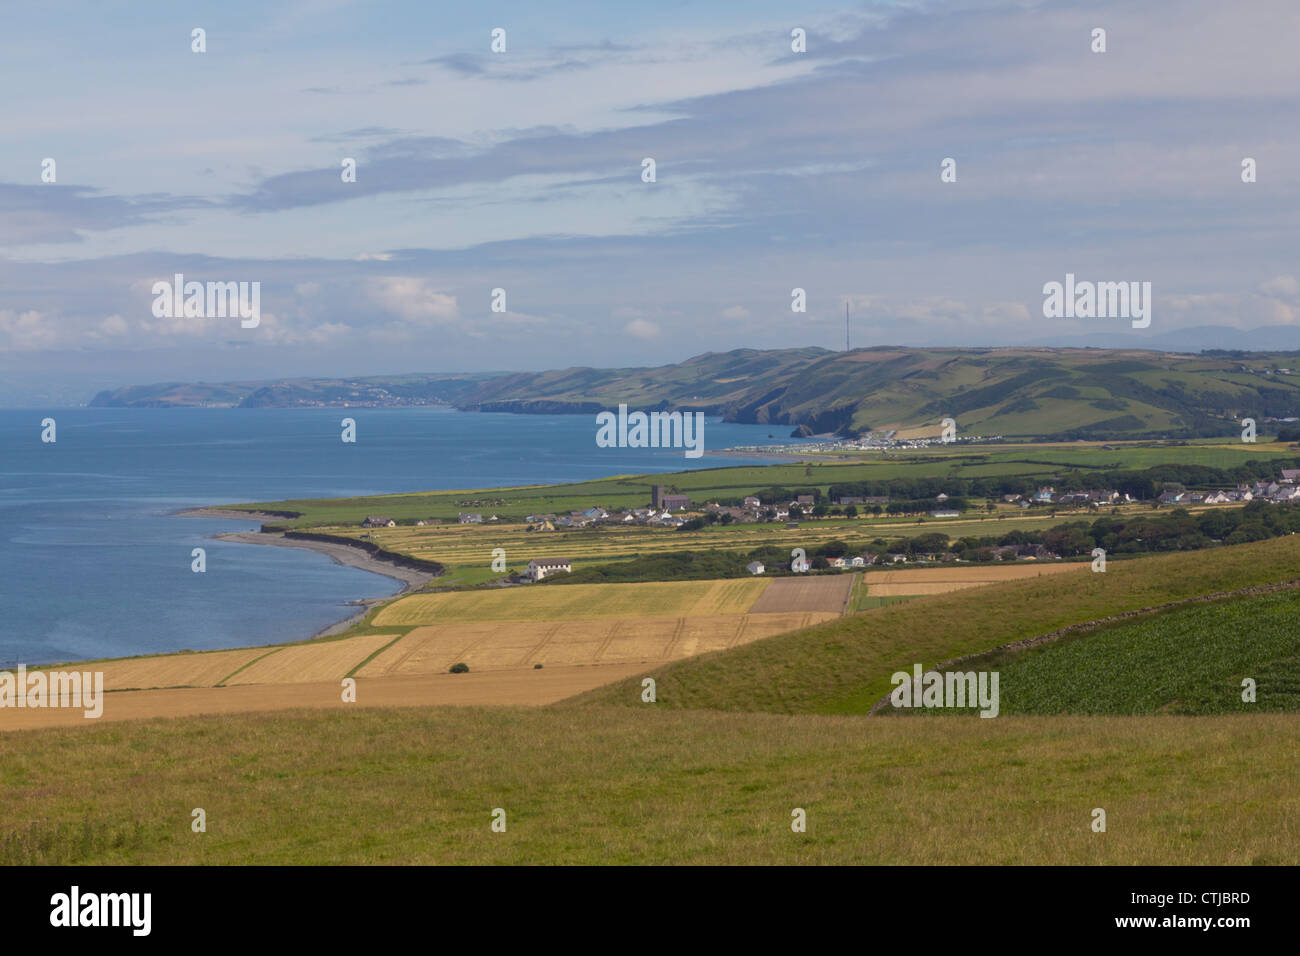 Sunny view of the Cardigan Bay, on the Welsh coast towards Llanon and Aberystwyth and Snowdonia in the far distance. - Stock Image